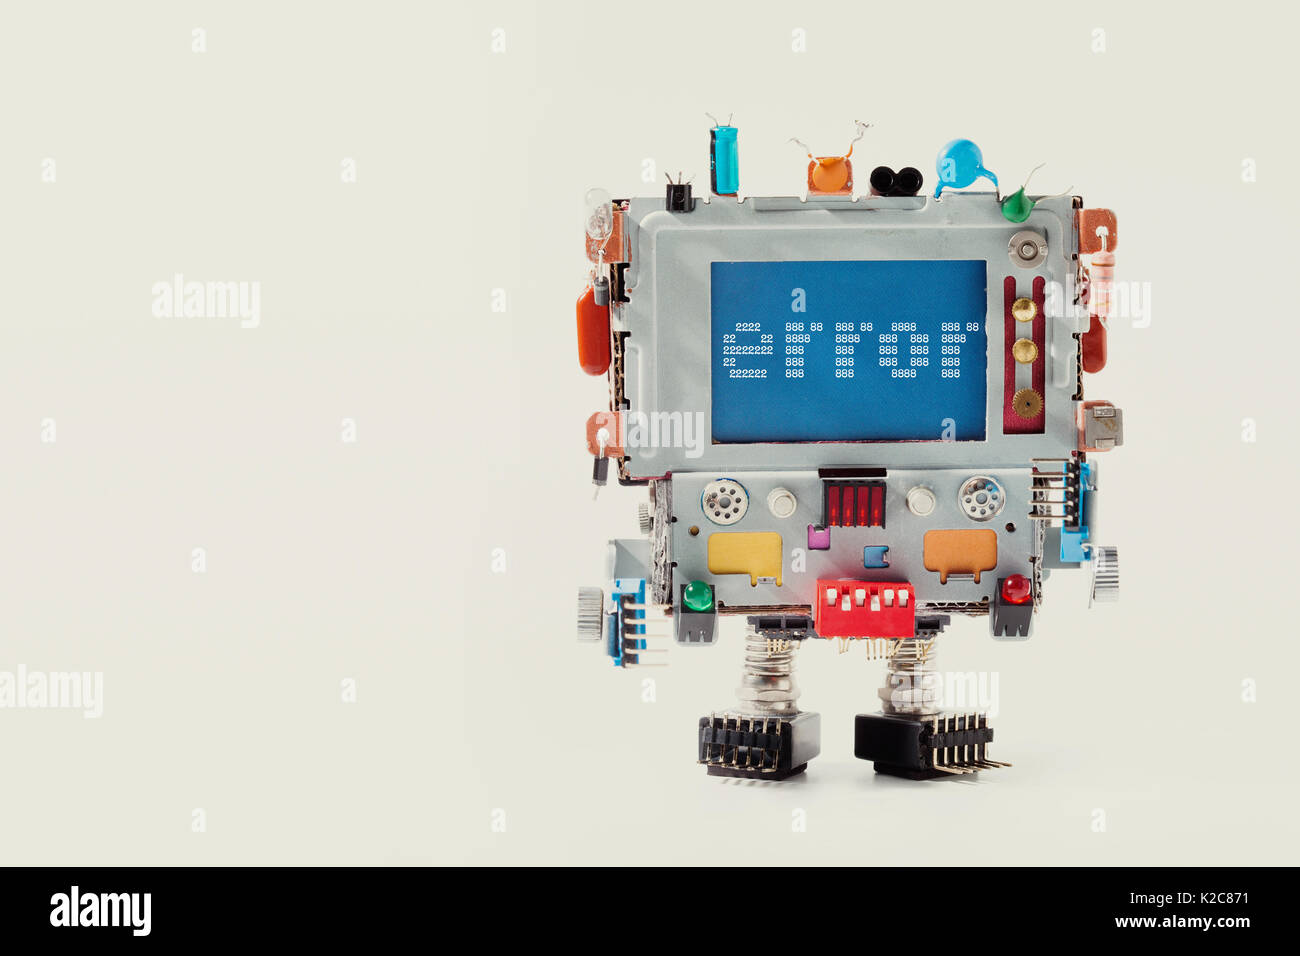 Error 404 page template for website. Retro robot with monitor computer head, colorful capacitor. warning message on blue screen. macro copy space photo - Stock Image